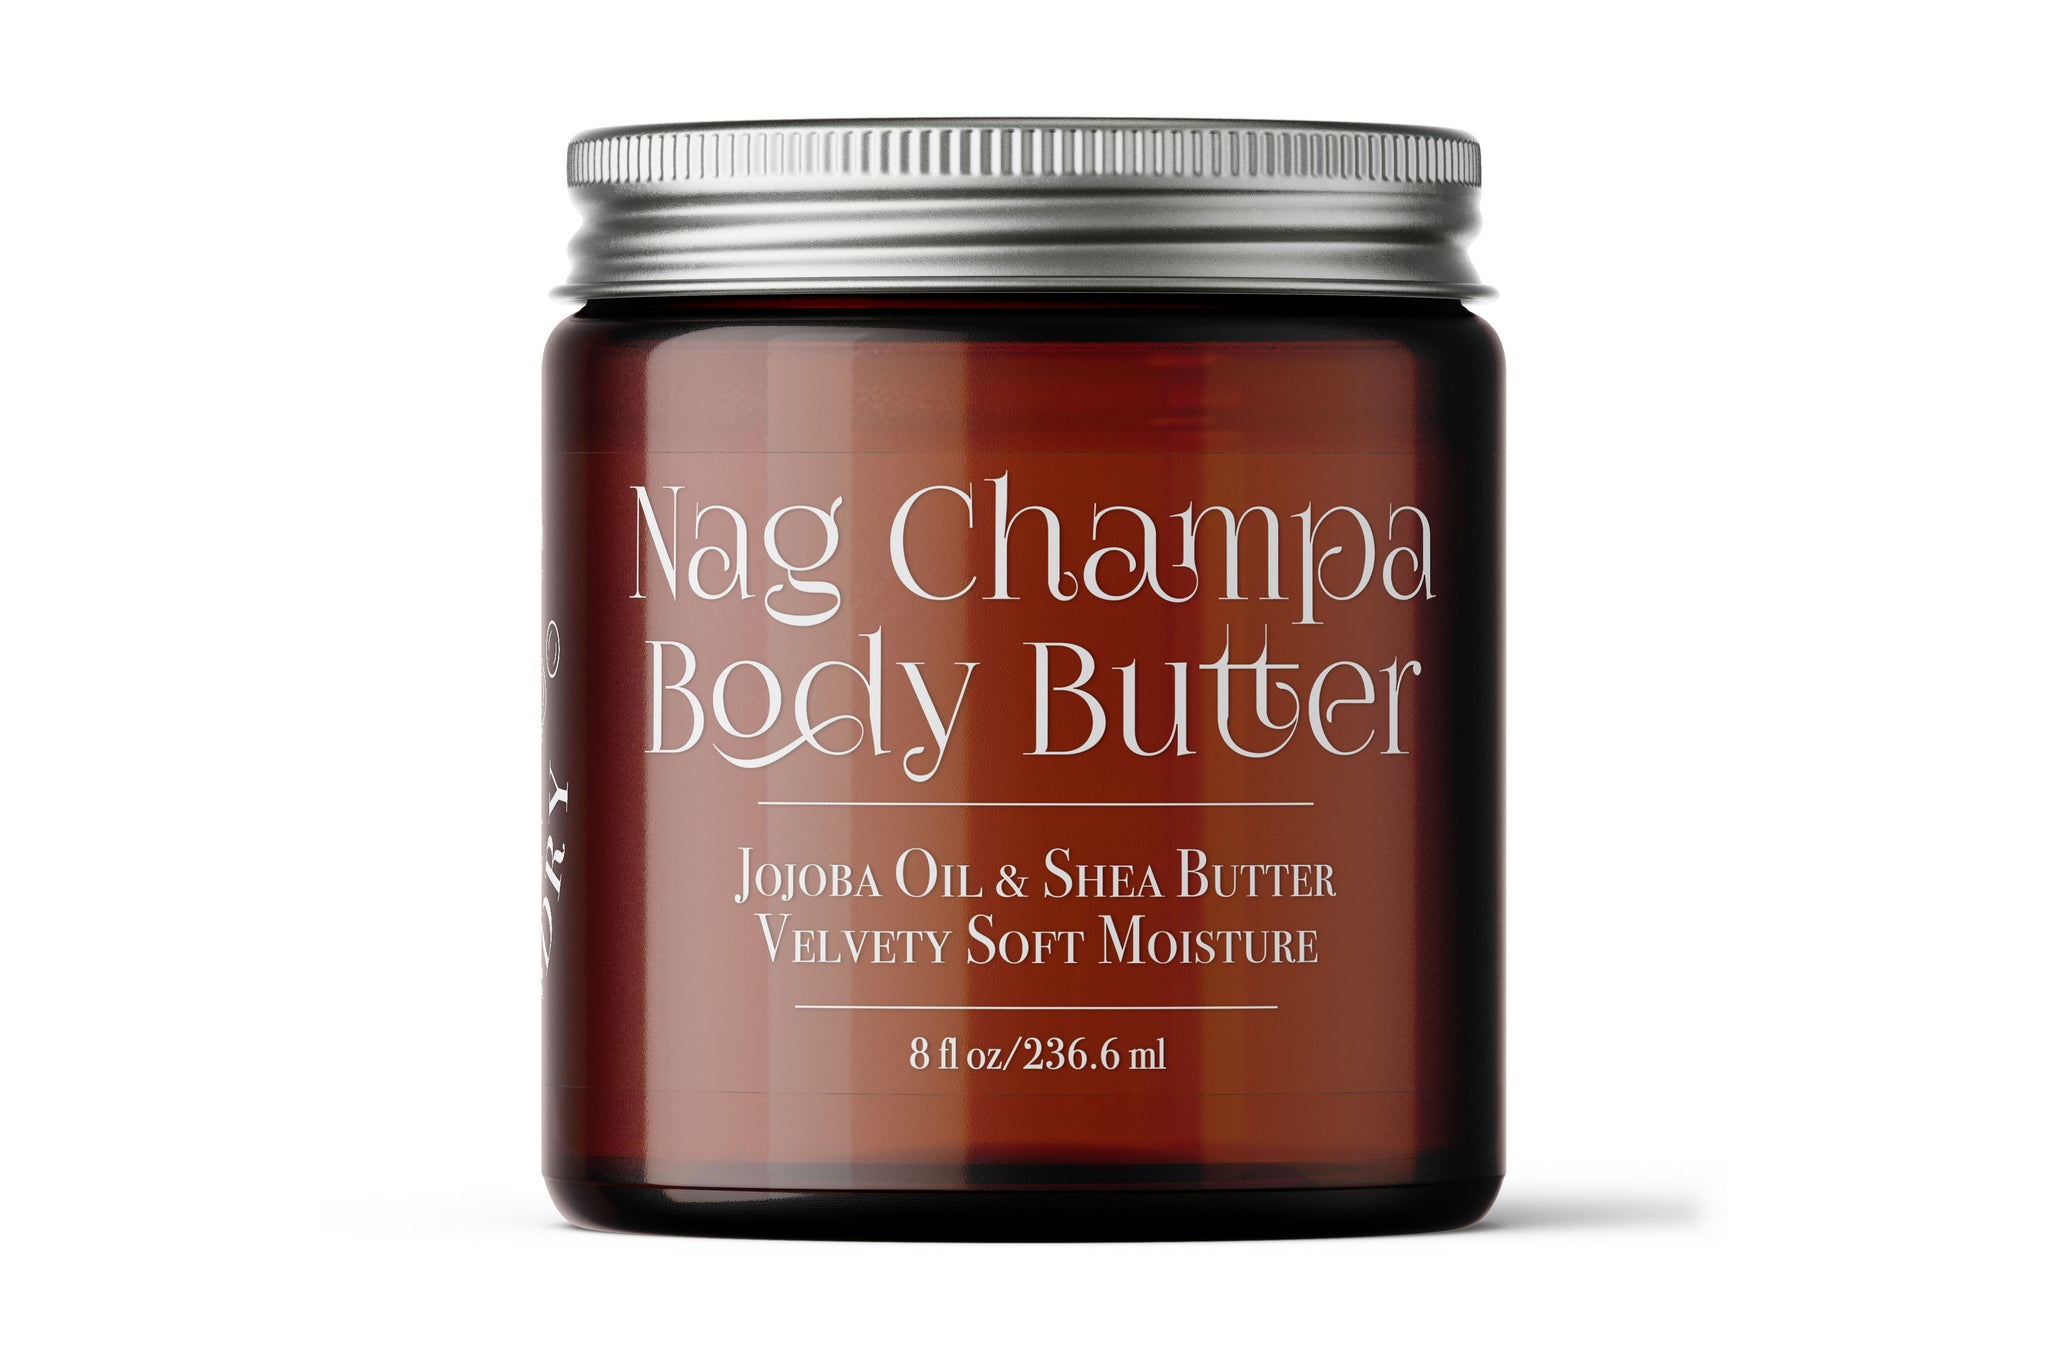 Nag Champa Body Butter - 8 oz.